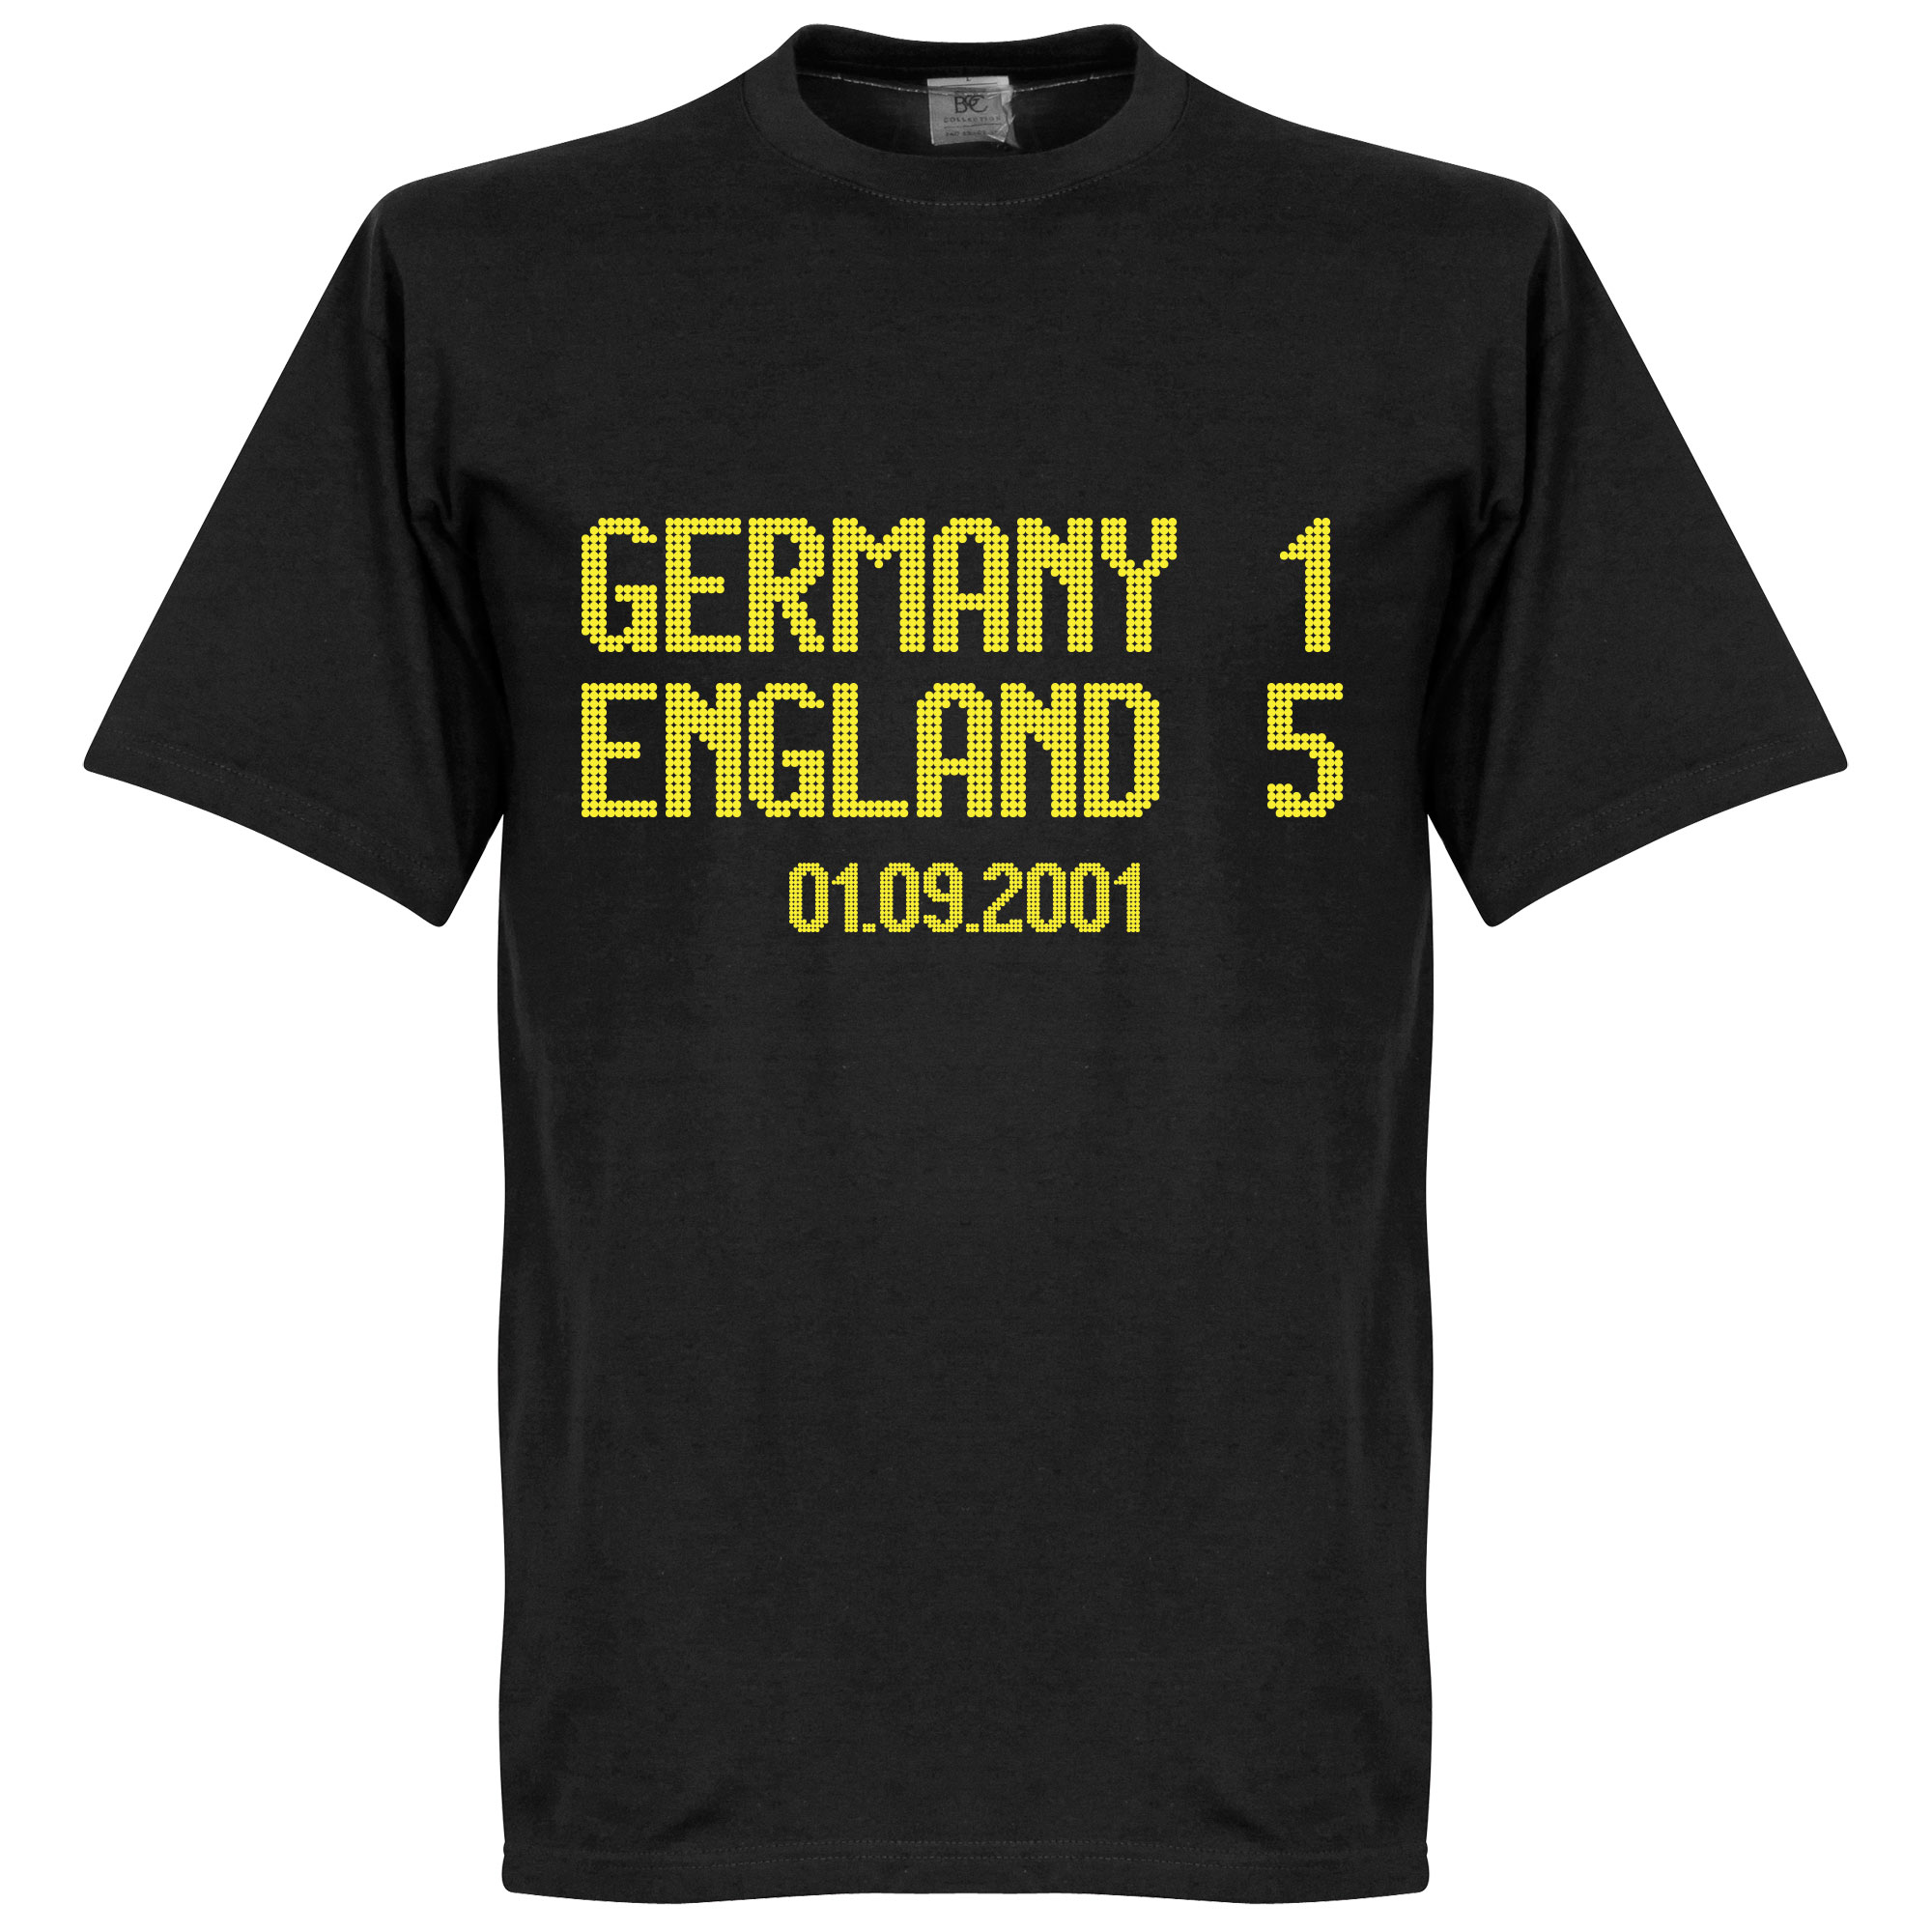 Germany 1 : England 5 Scoreboard Tee - XL